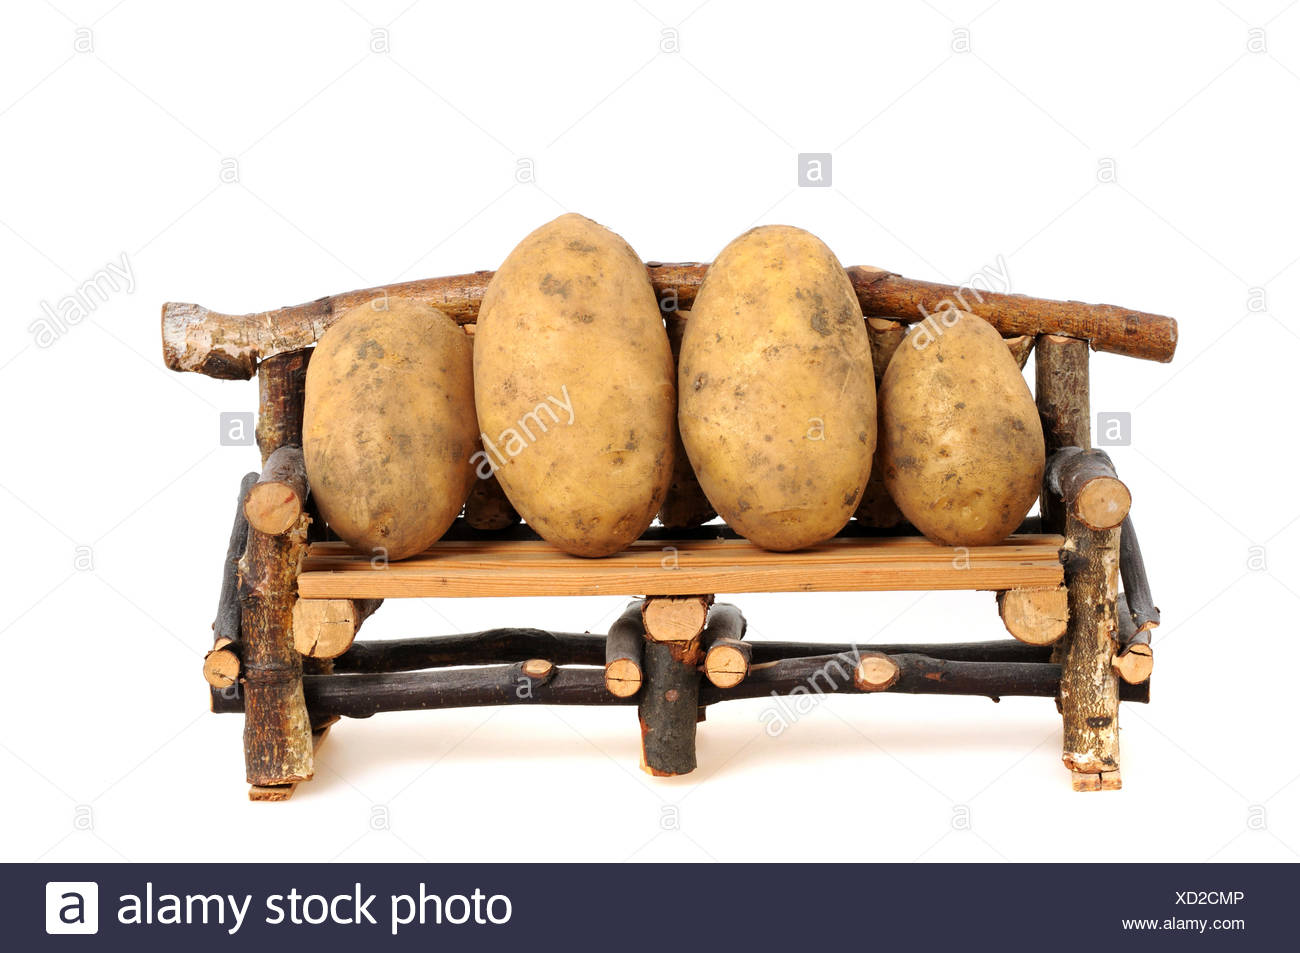 Couch Potatoe Stock Photos & Couch Potatoe Stock Images ...